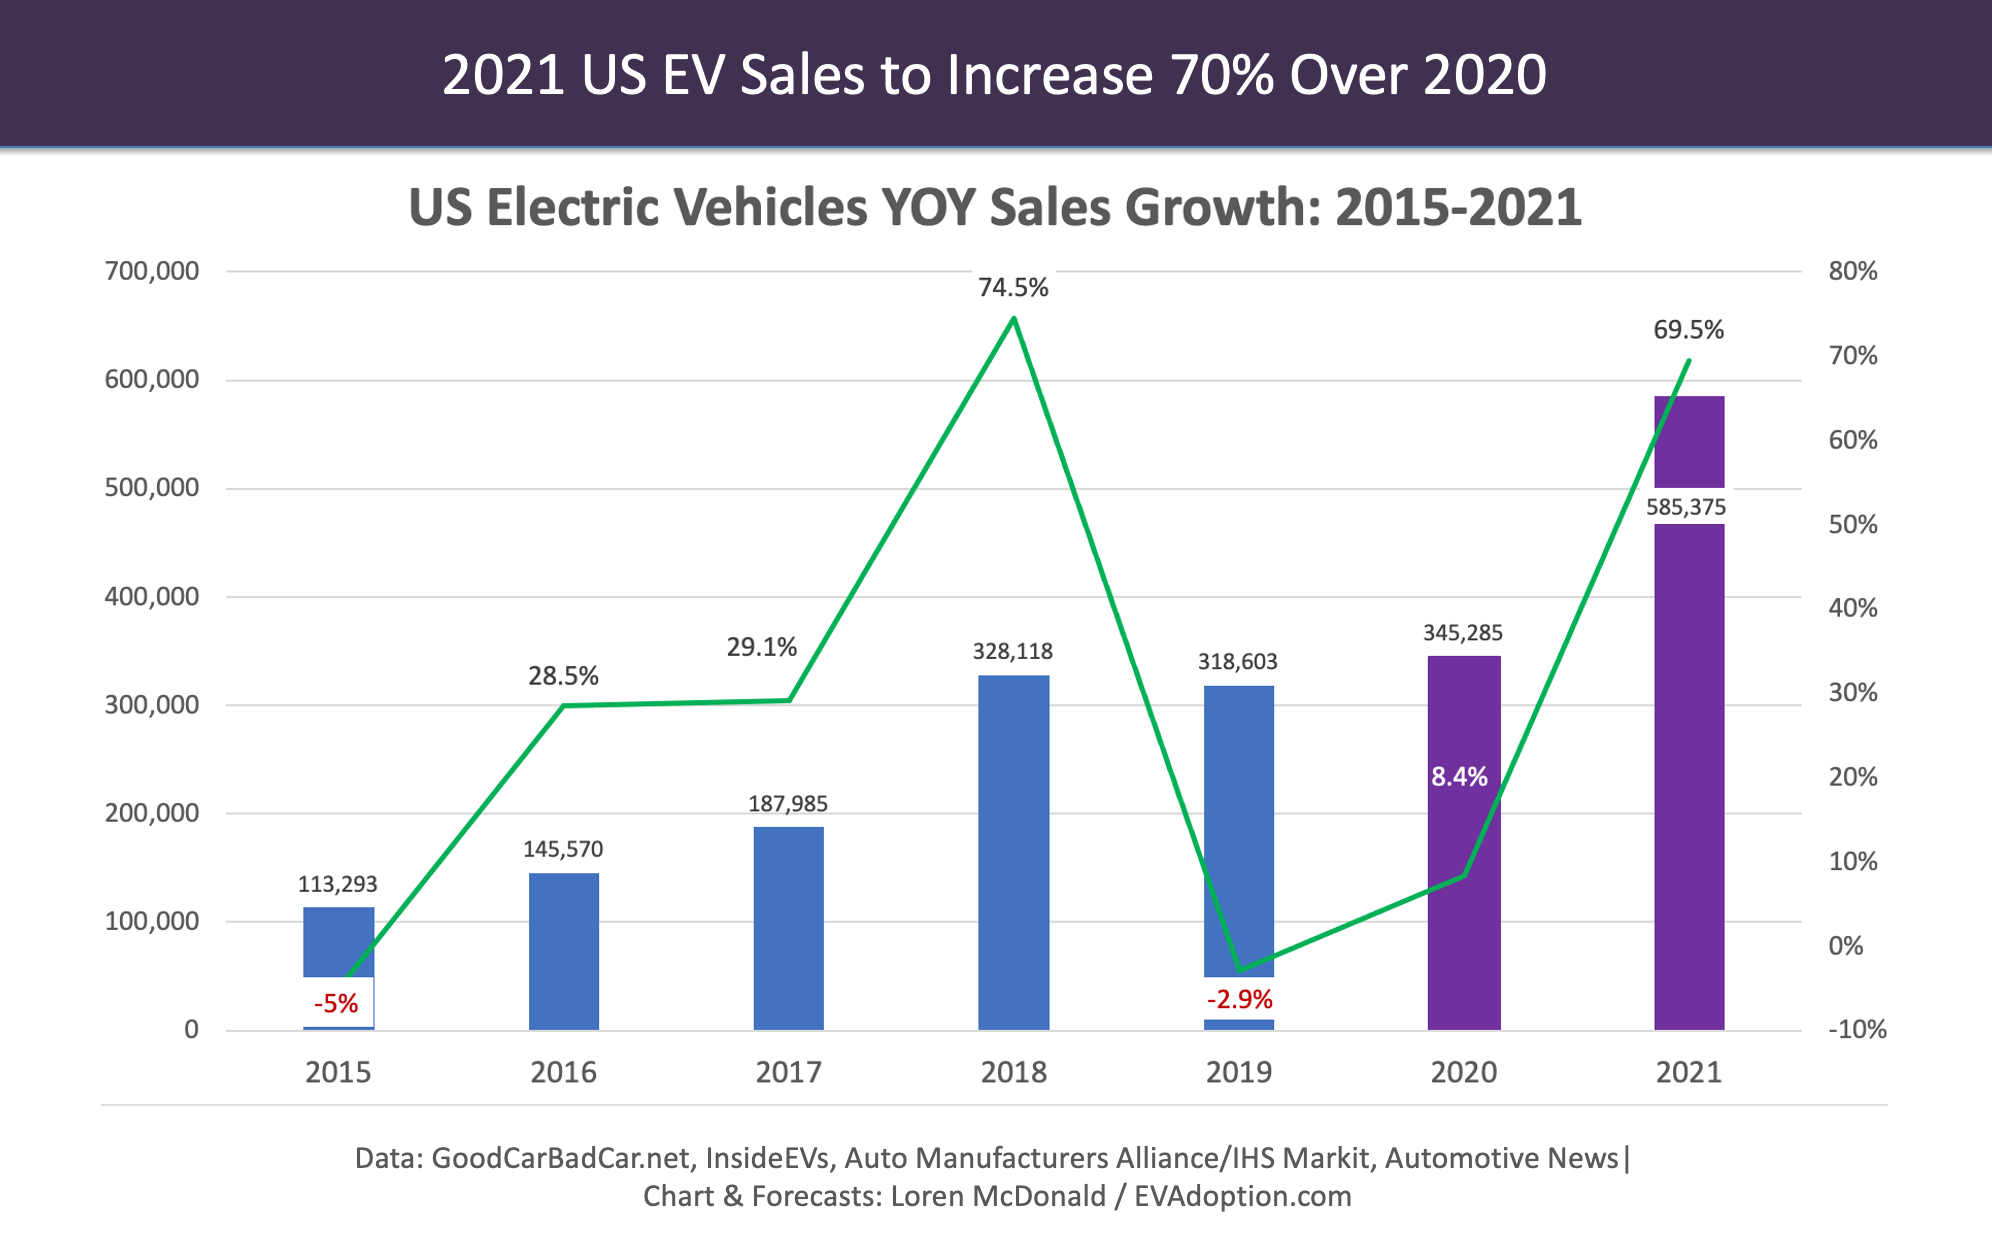 US EV Sales 2015-2021 YOY Growth